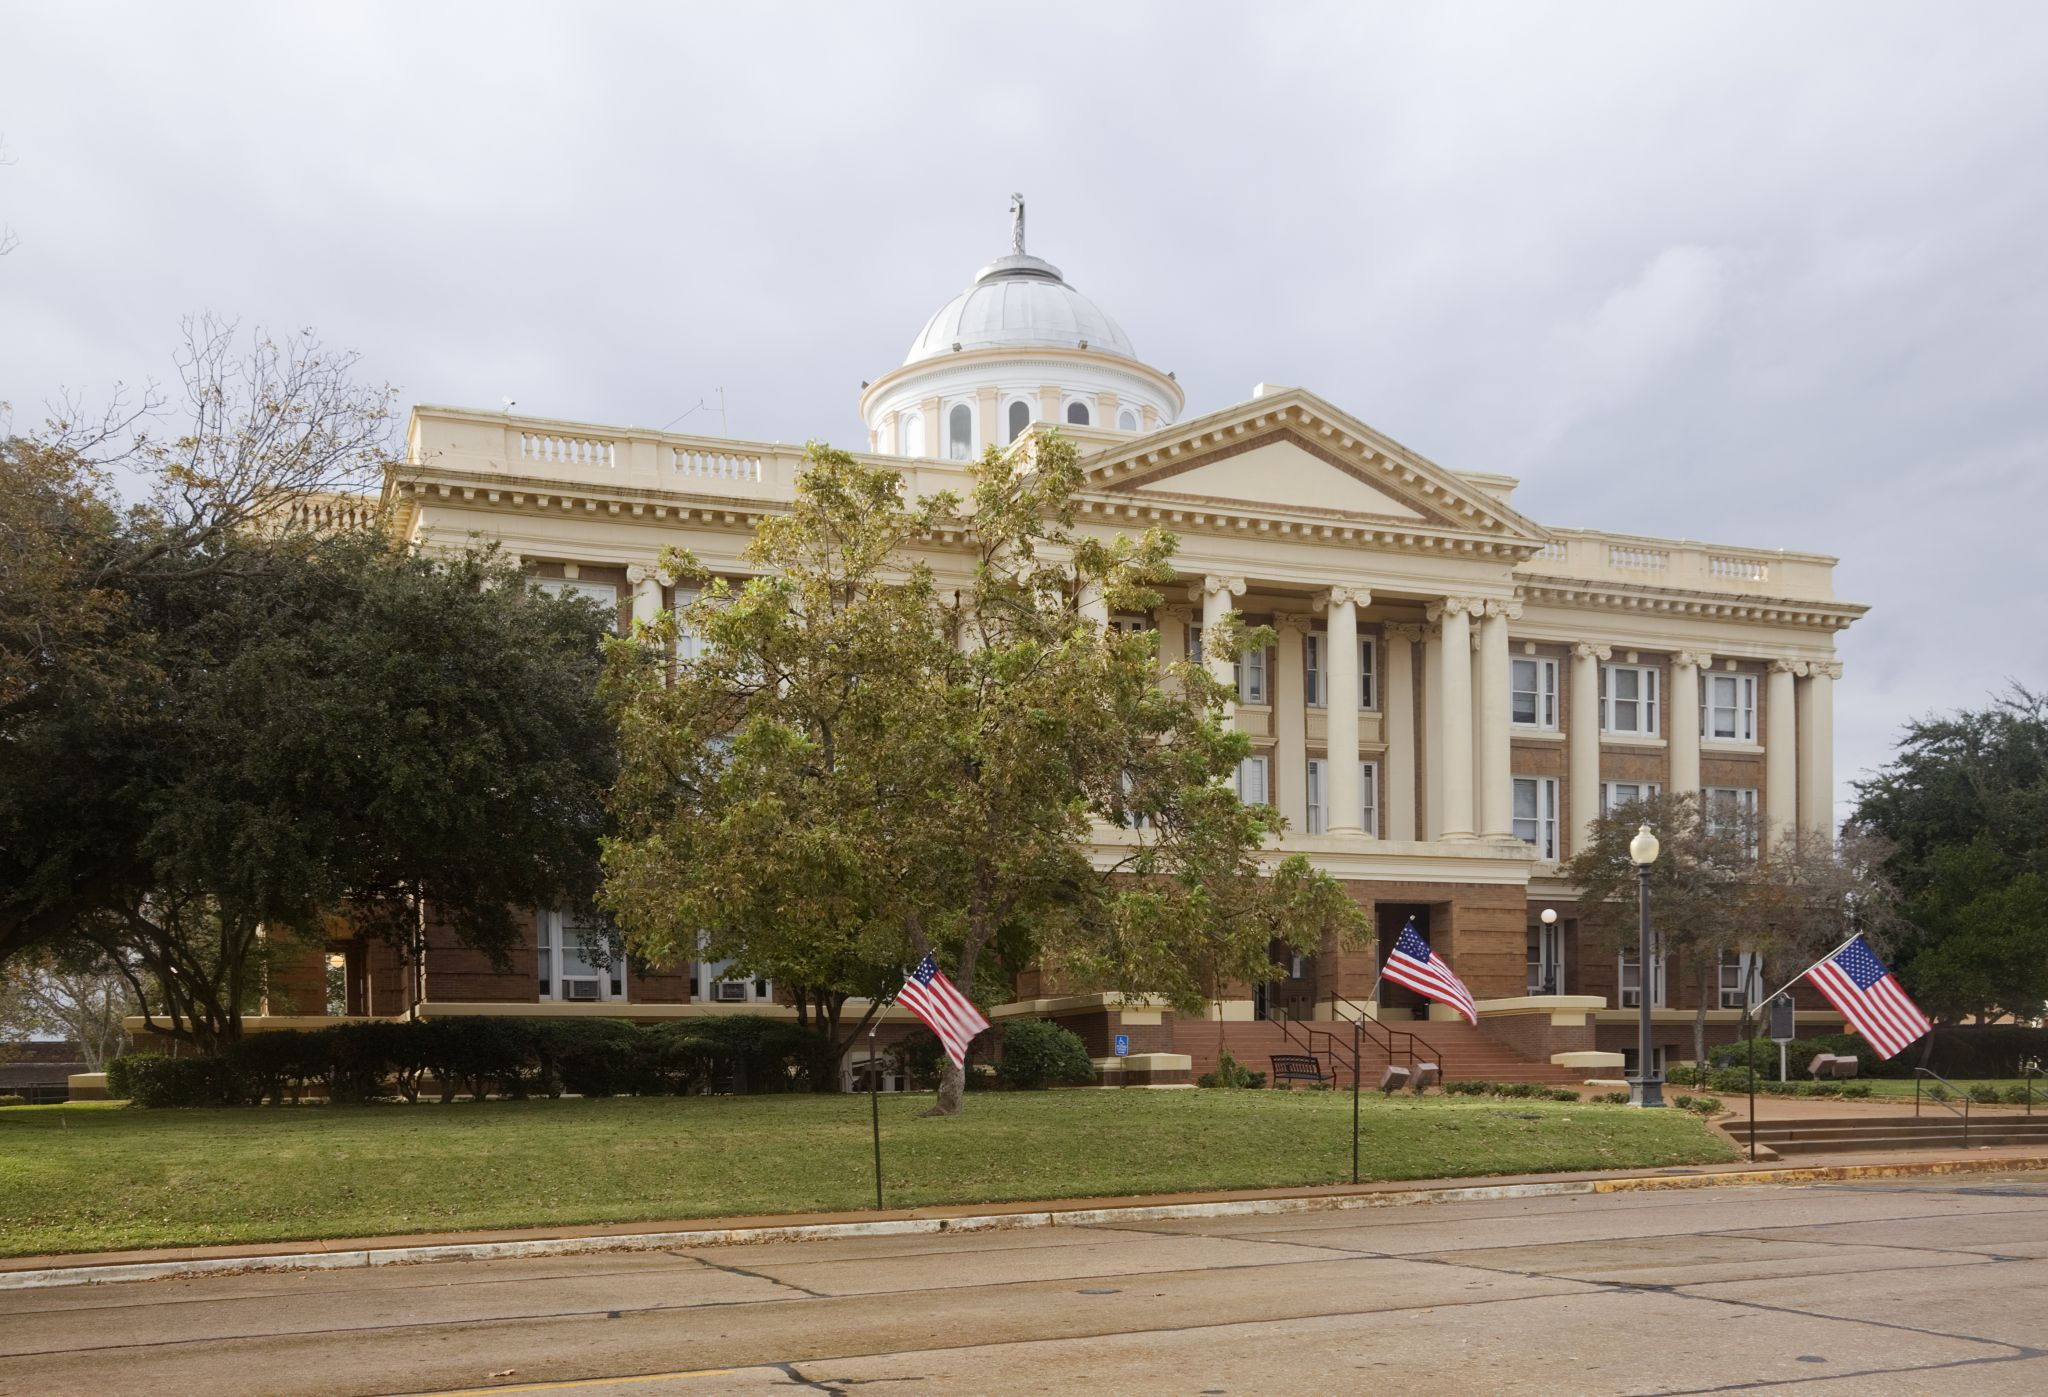 Mosque Killer S Rifles Bore: 29 Historic Texas Courthouses That Look Like Castles